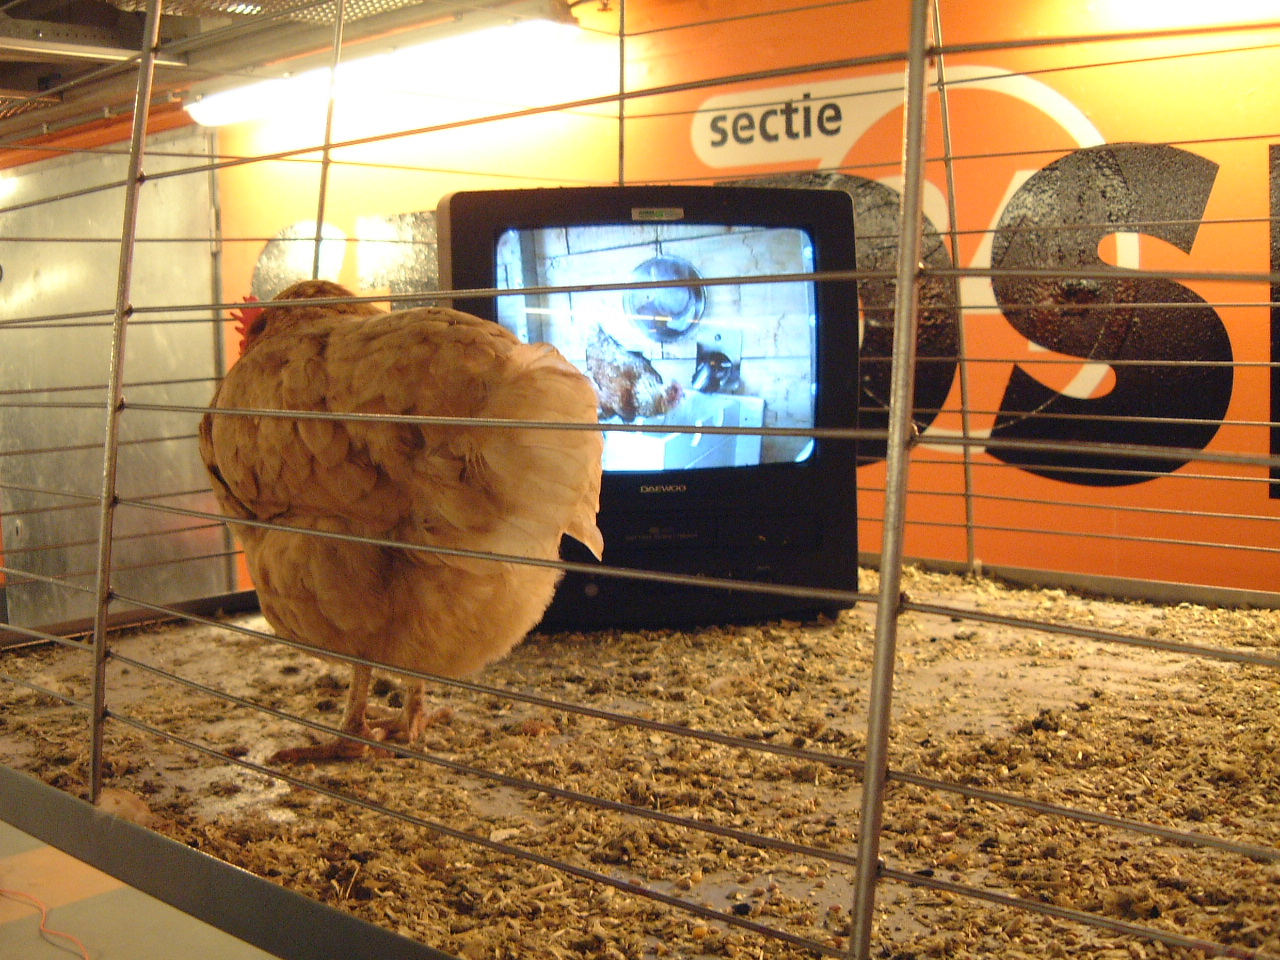 maartent chicken in a cage watching television. (hatching television?)